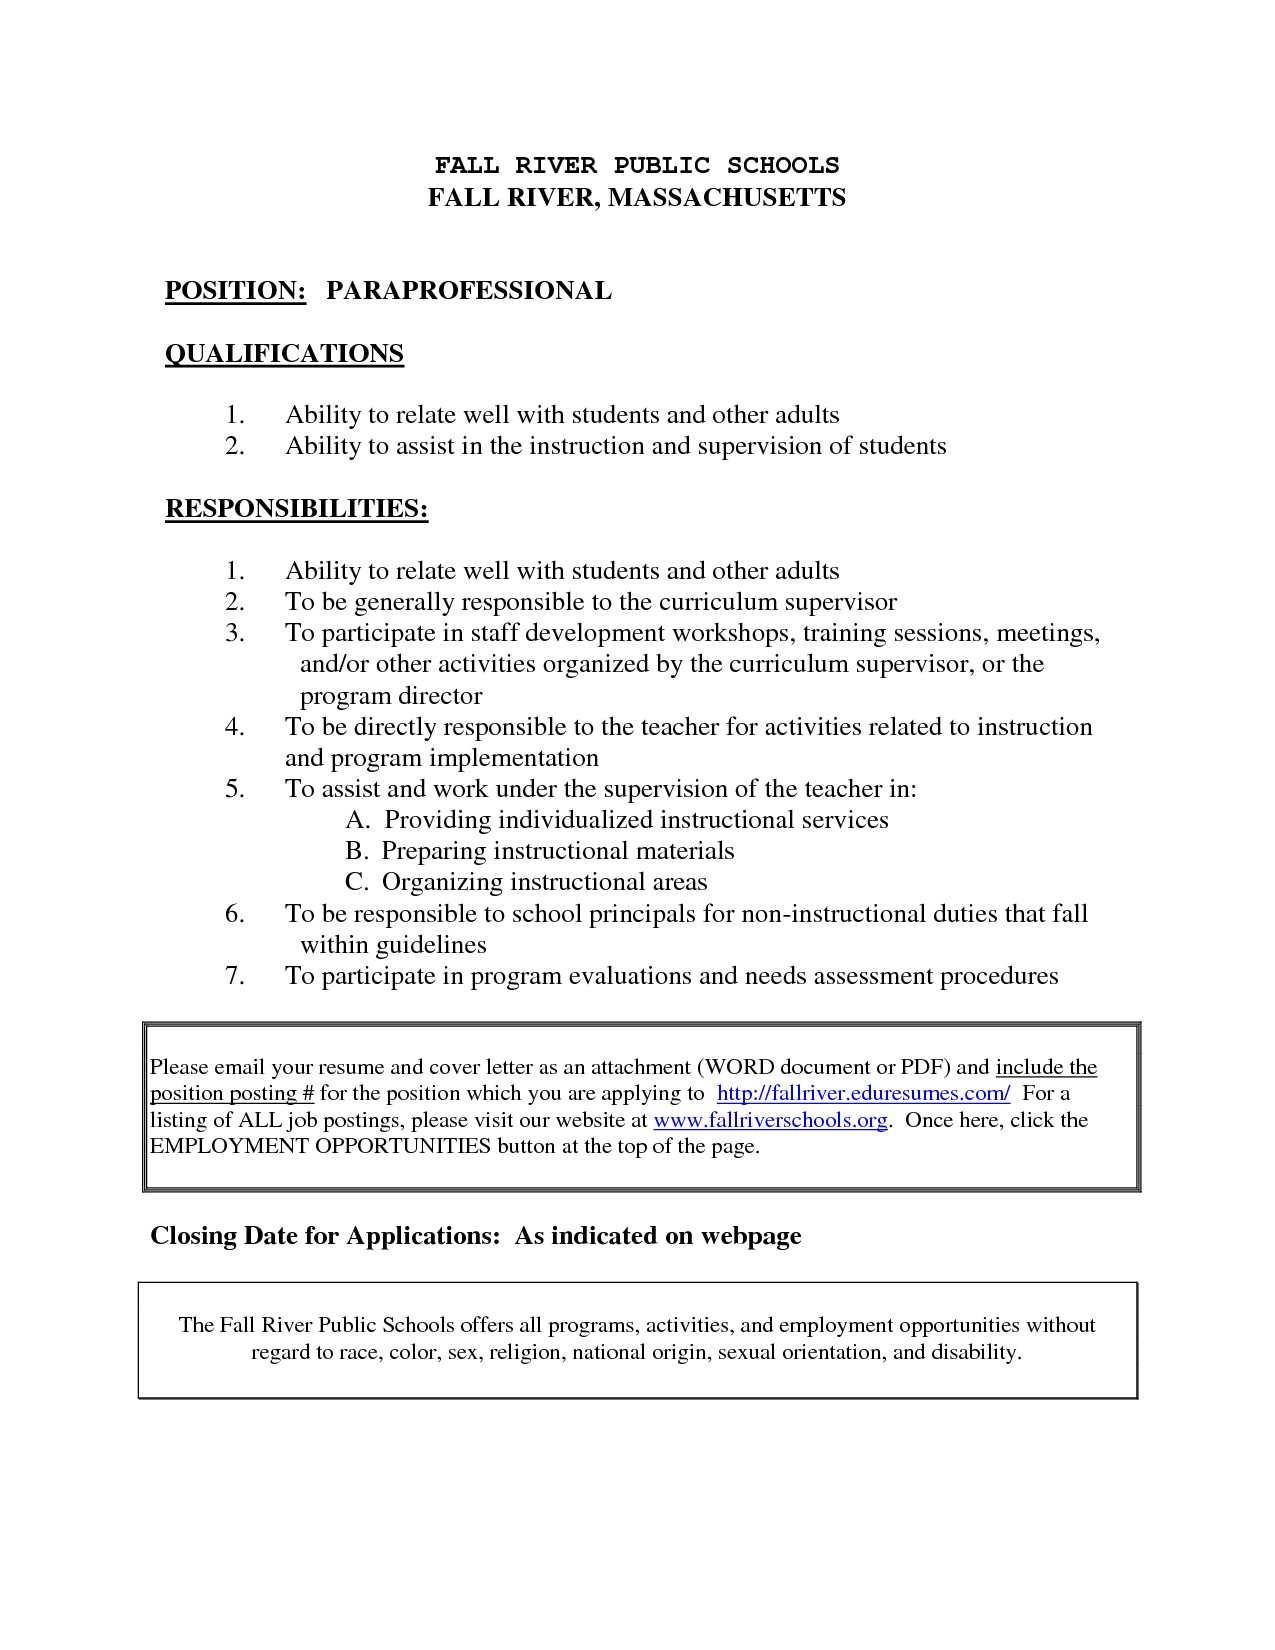 paraprofessional job description for resume